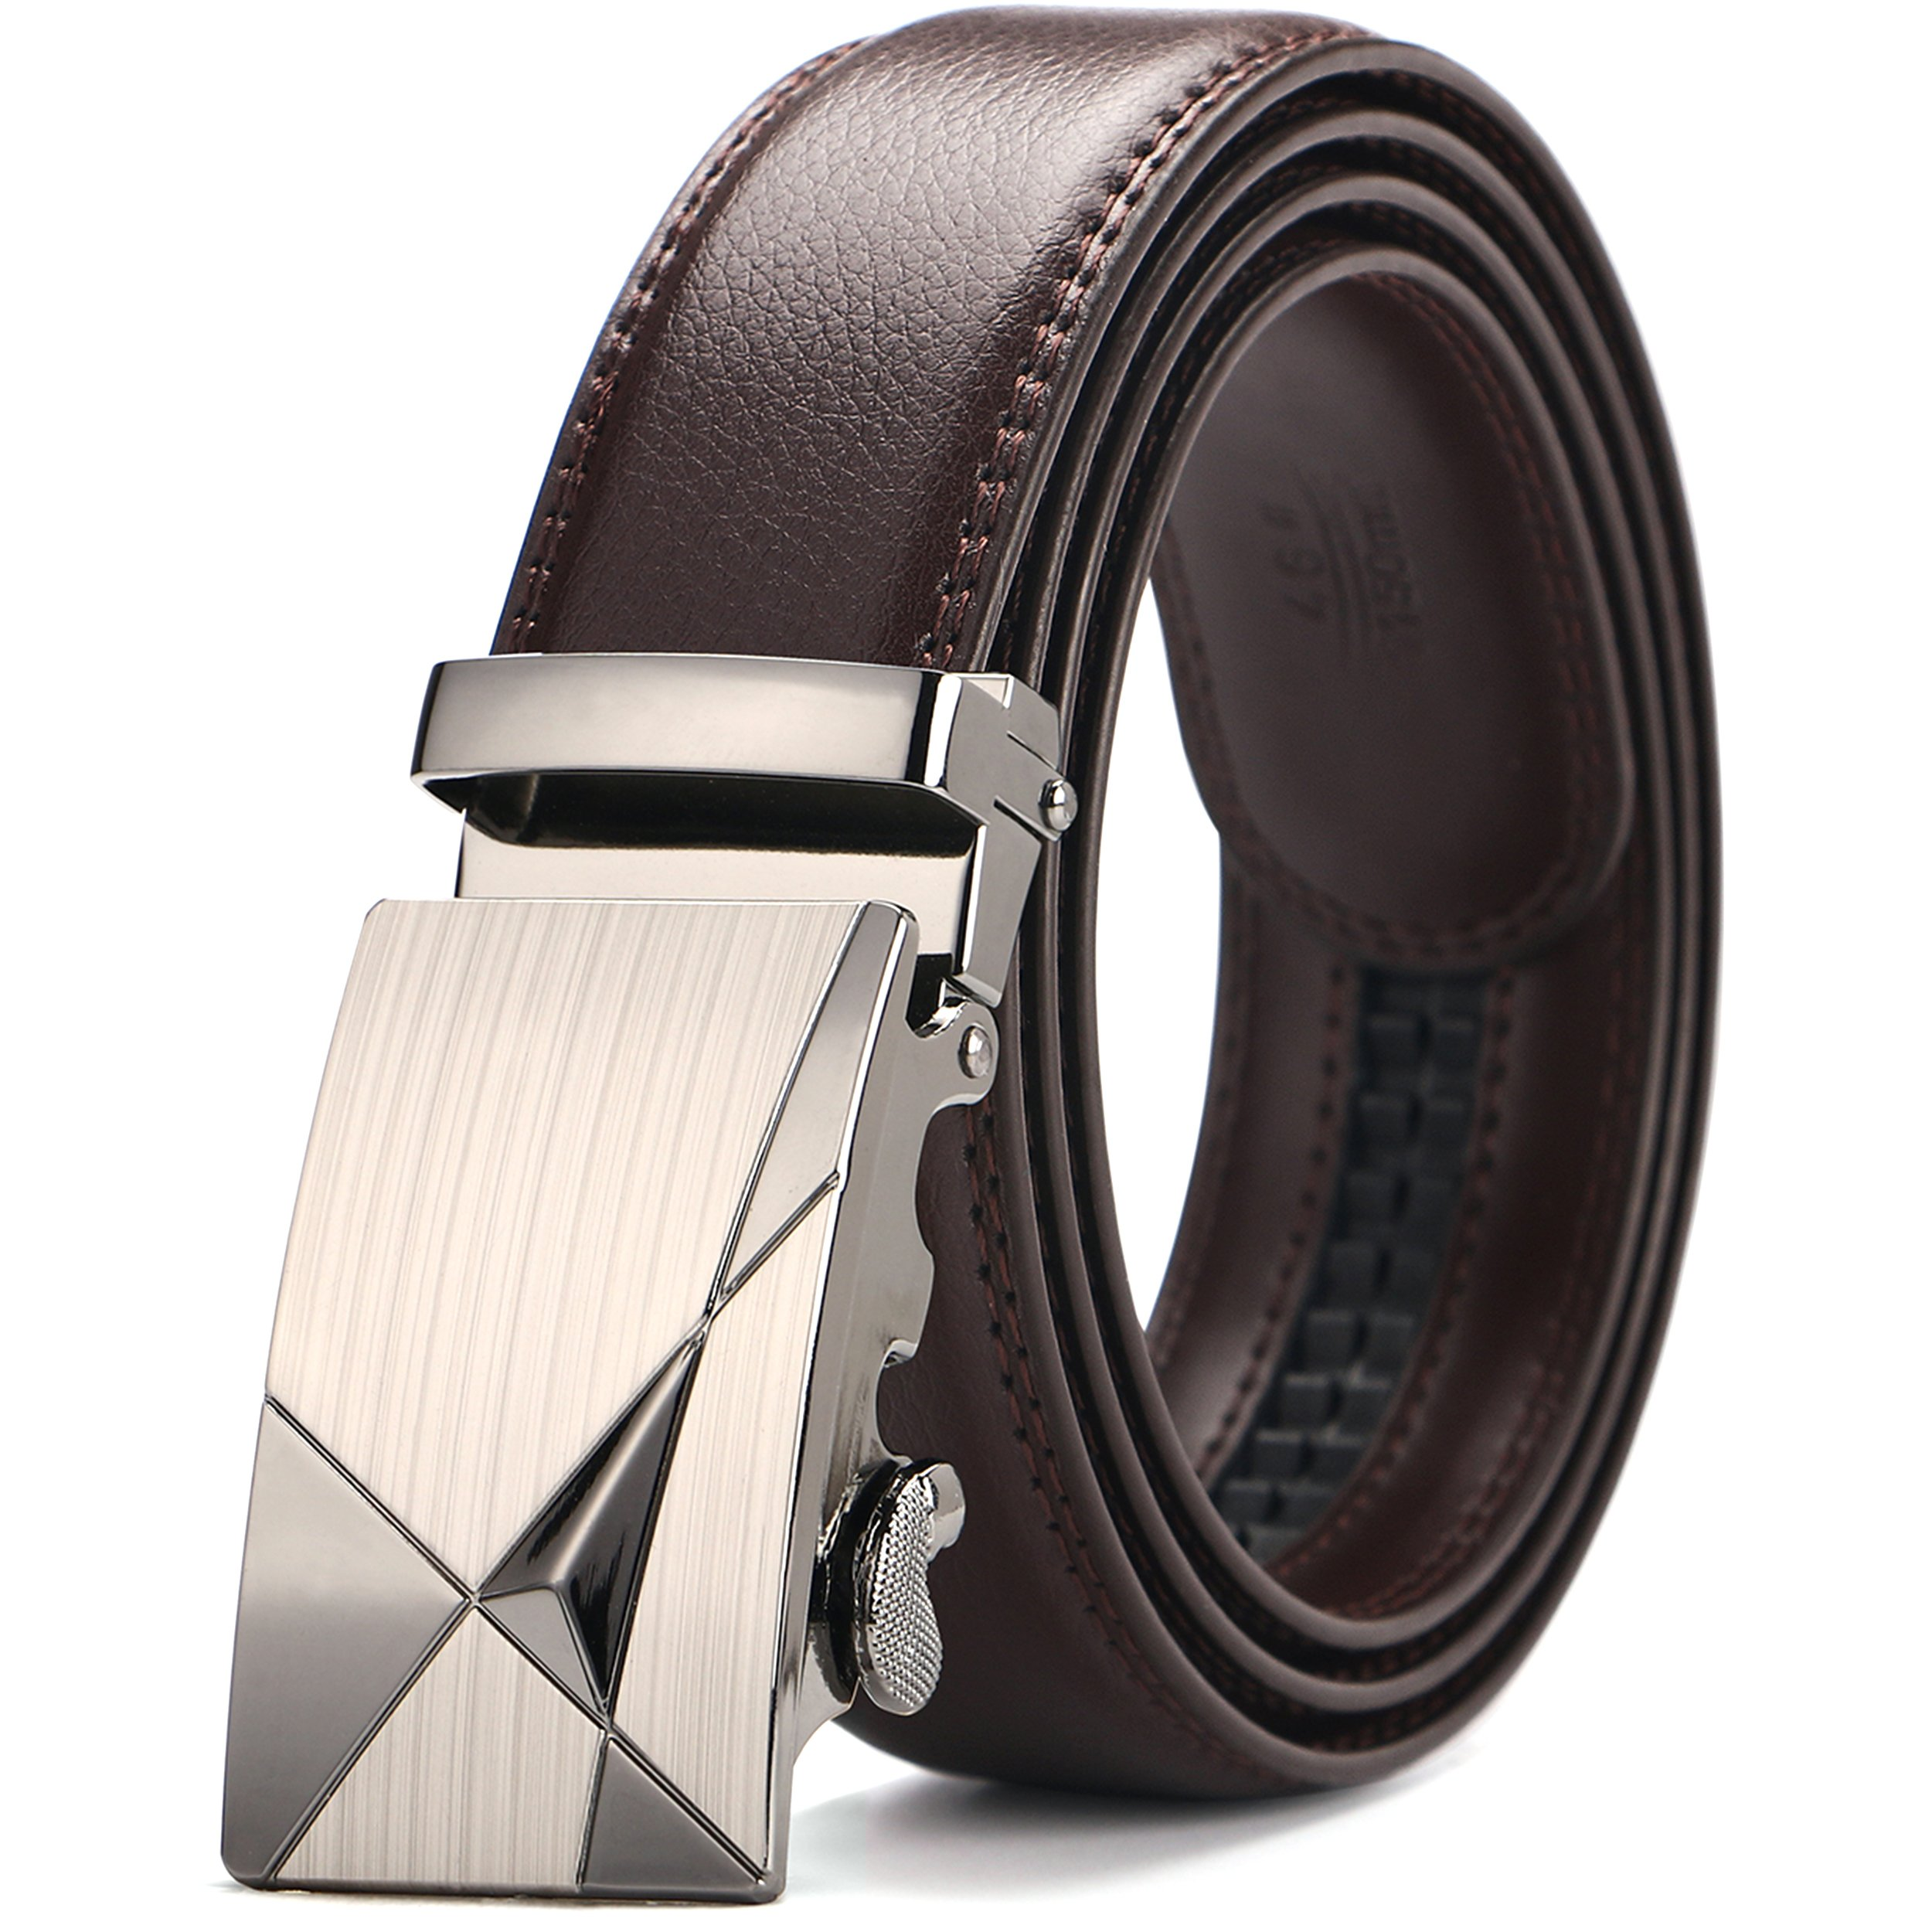 Iztor Men's Belts Leather Ratchet Dress Belt with Automatic Buckle 1 3/8'' Wider for from 20'' to 43'' Waist